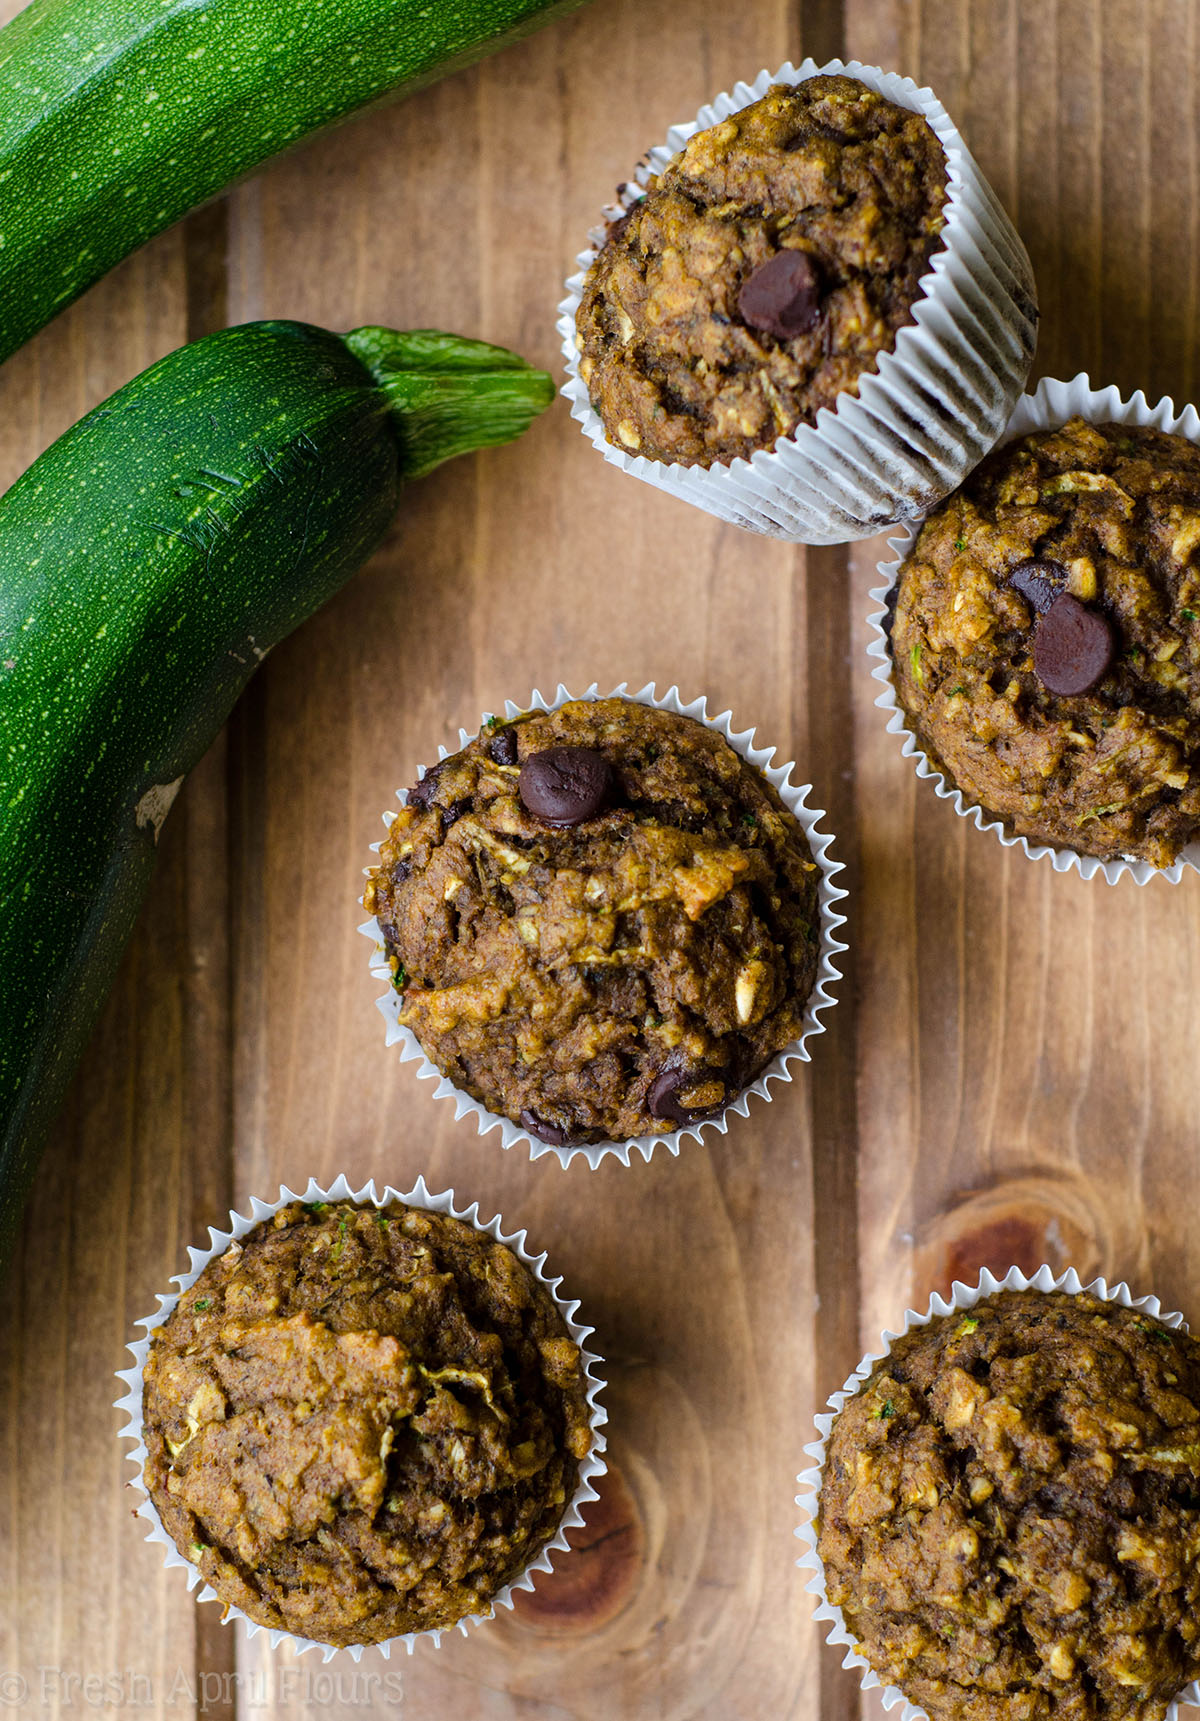 toddler muffins on a surface with zucchini around them